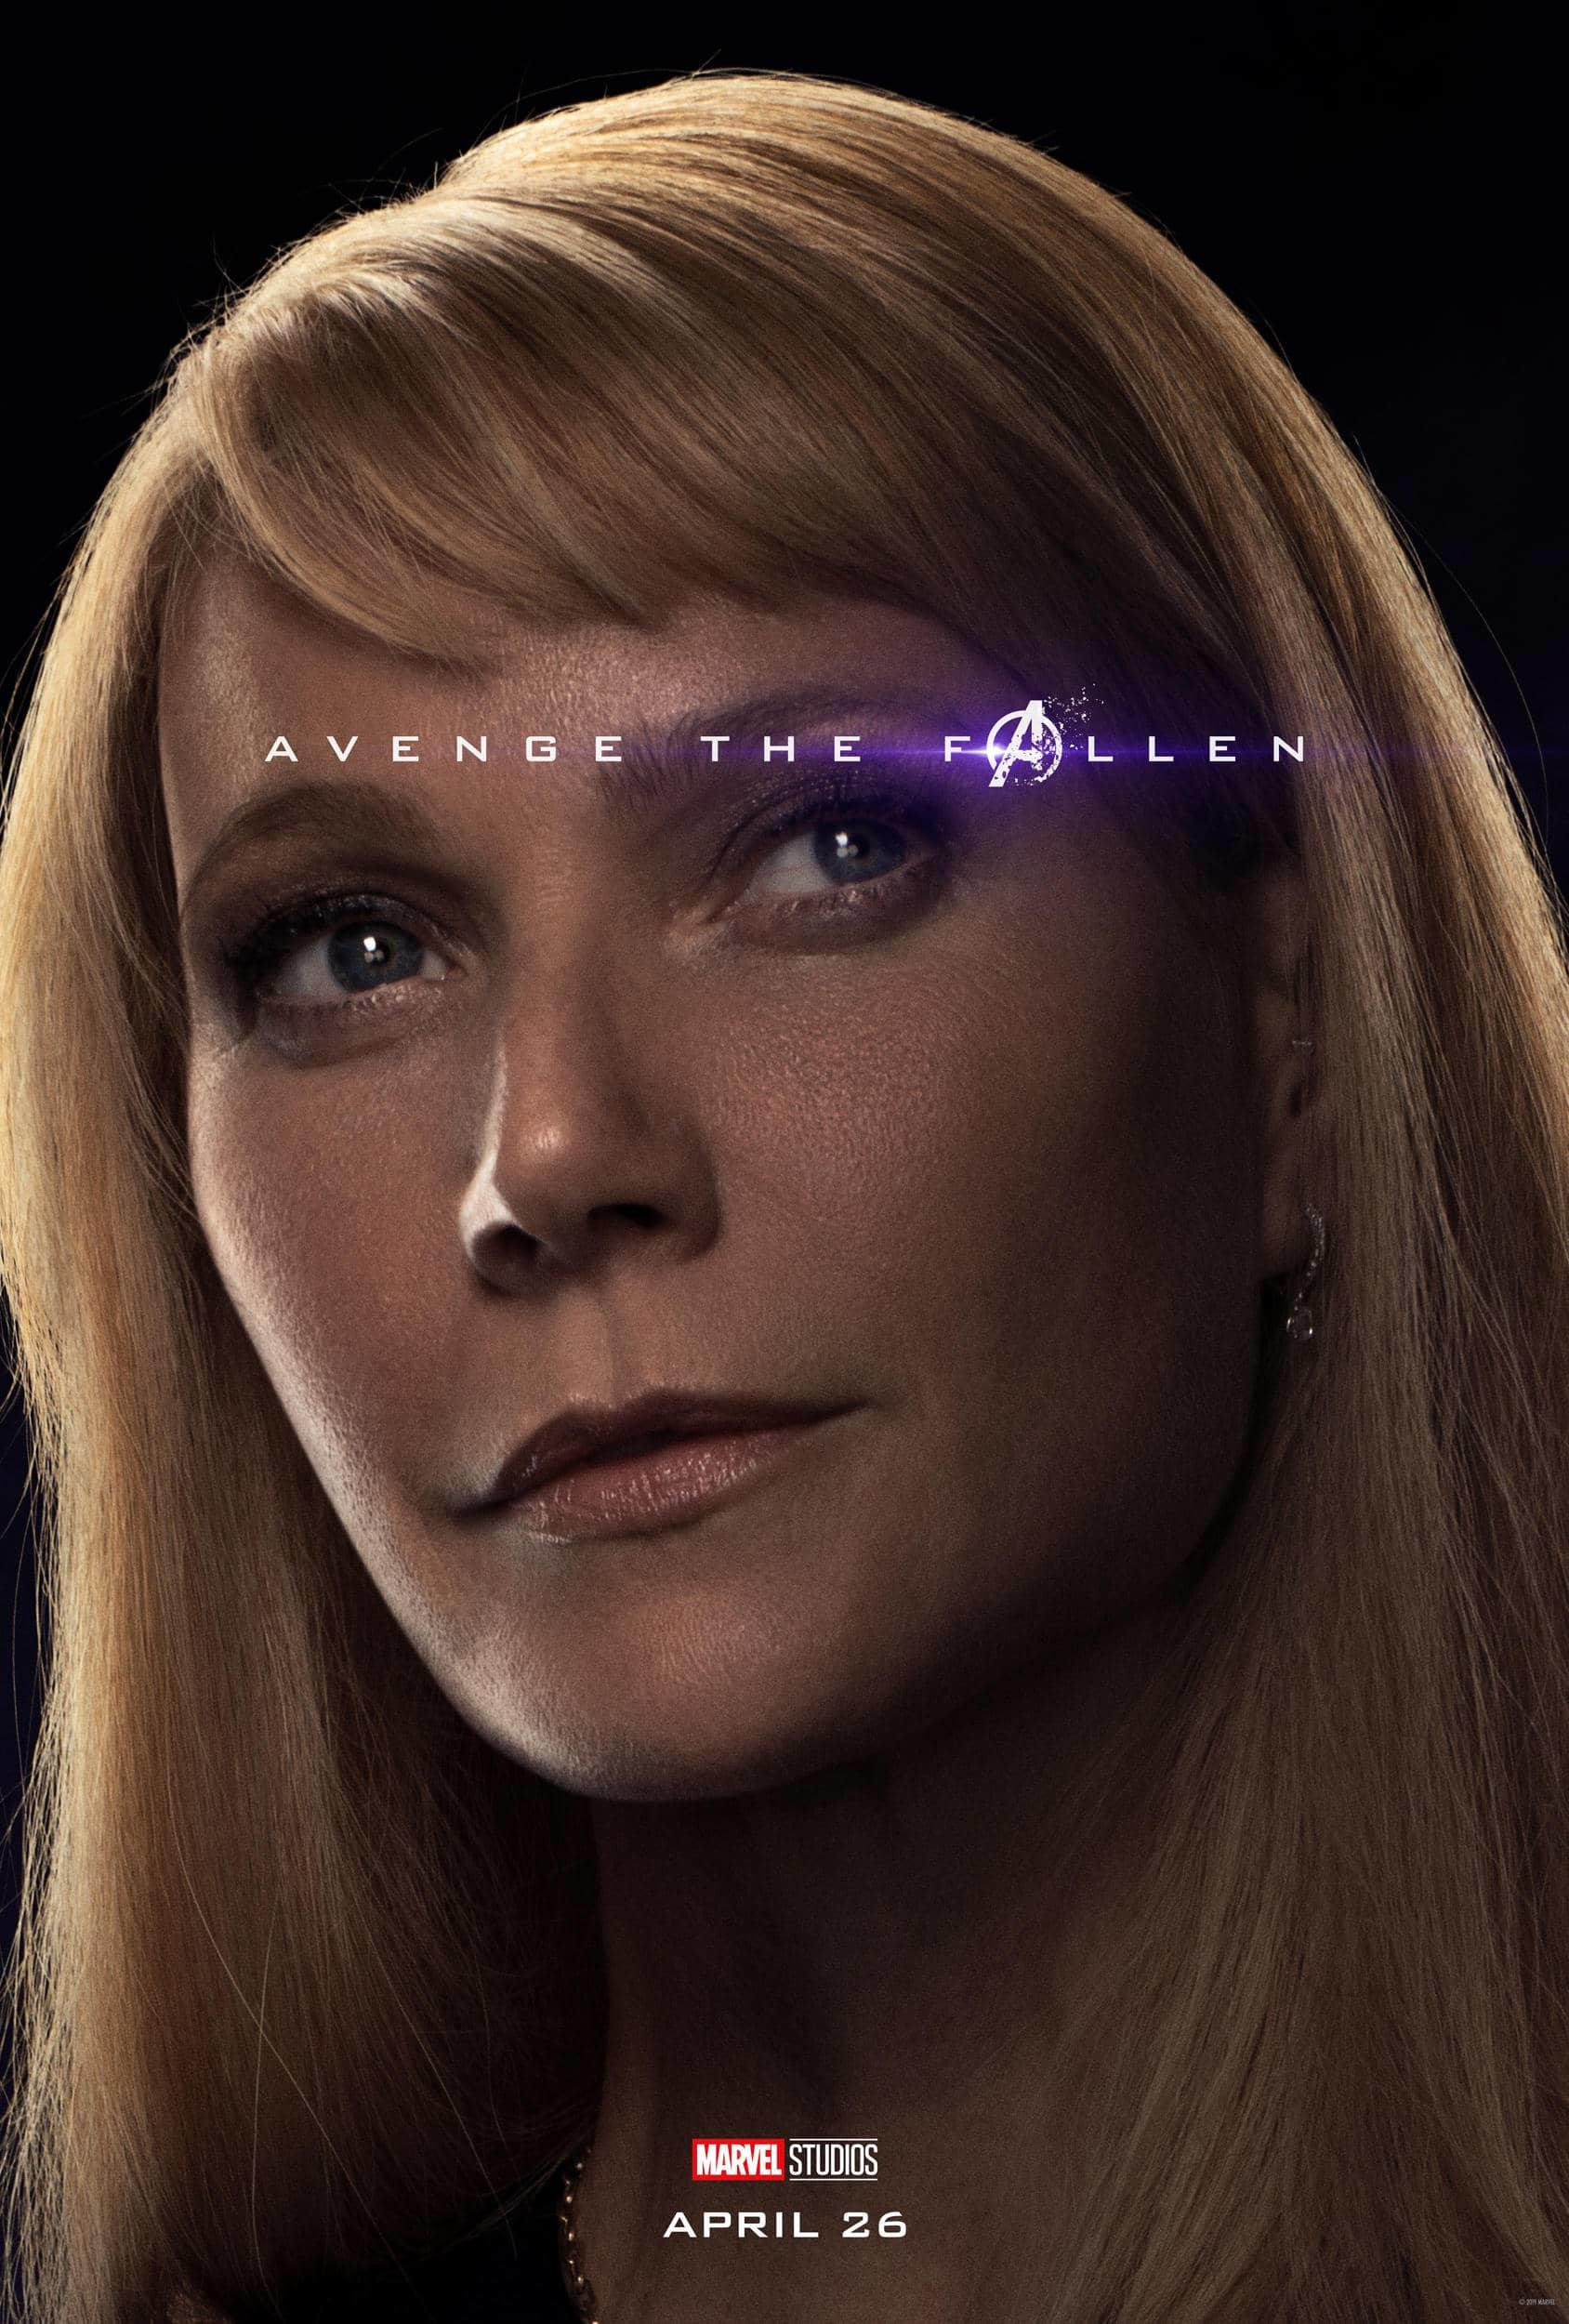 Marvel Studios' Avengers: Endgame Movie Cast Pepper Potts Gwyneth Paltrow